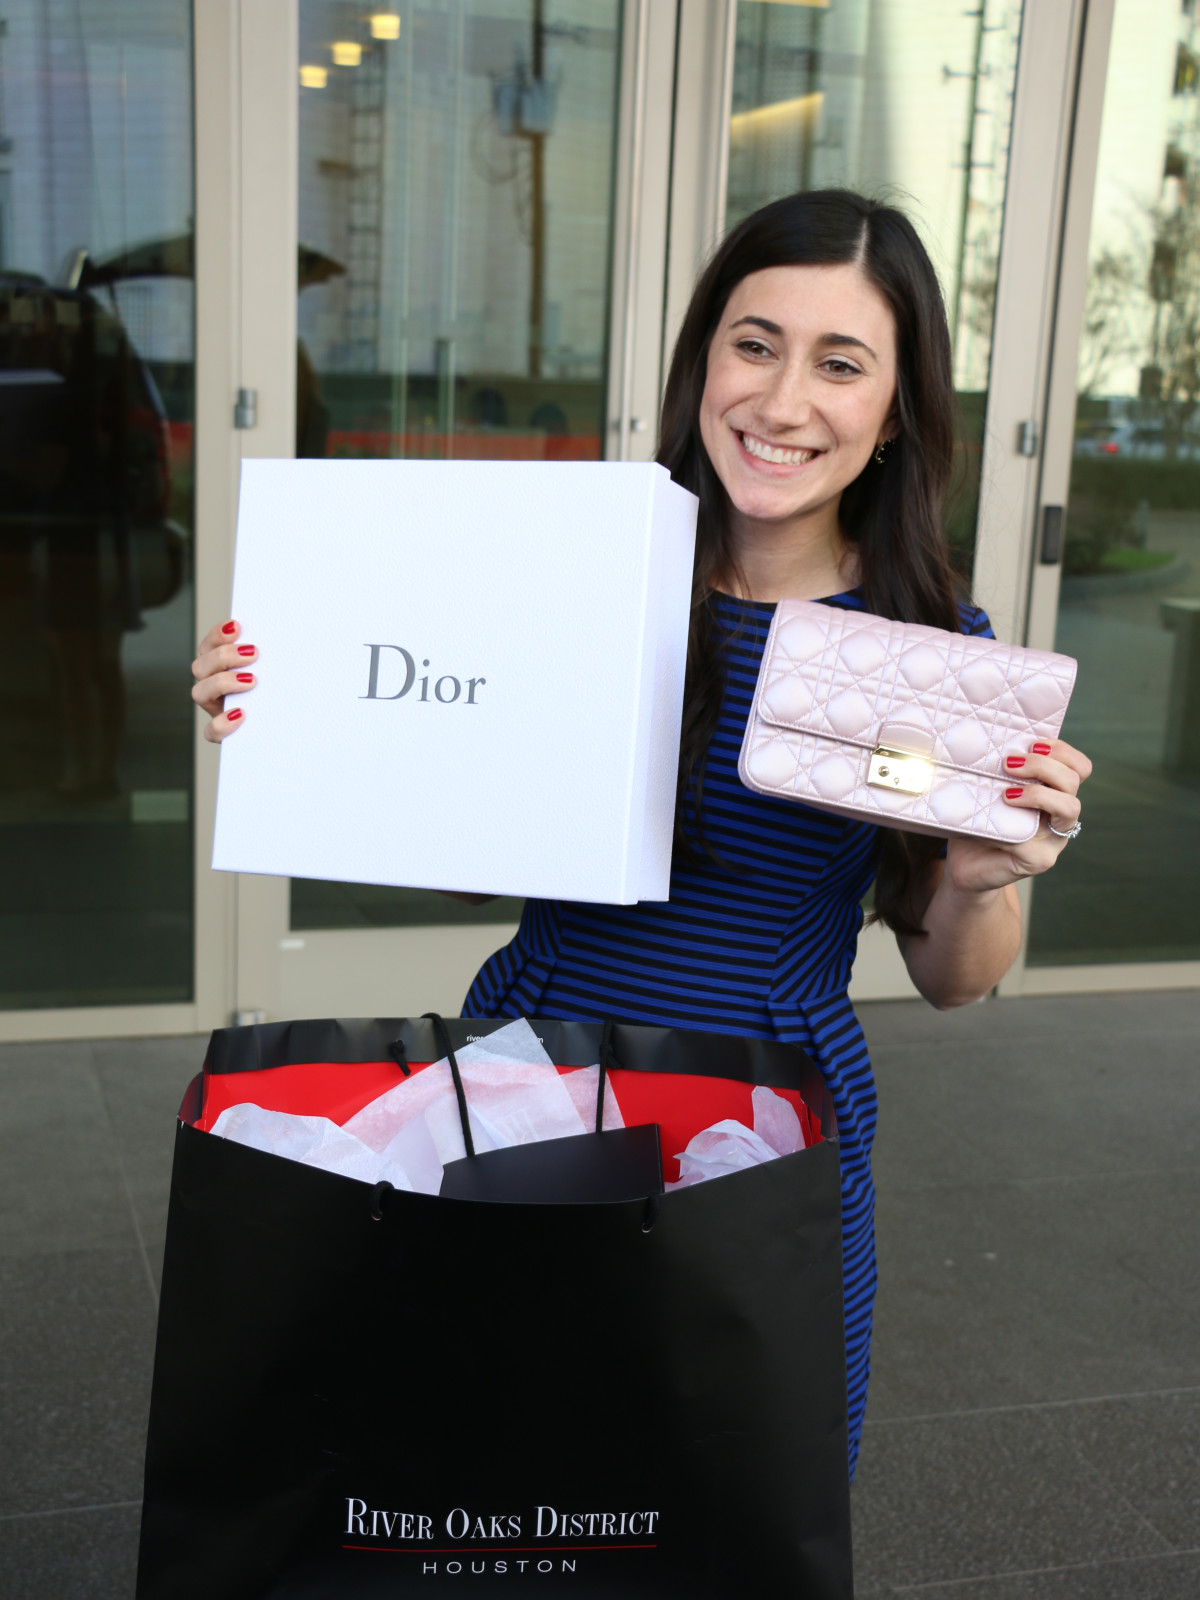 Dior winner in Uber promotion